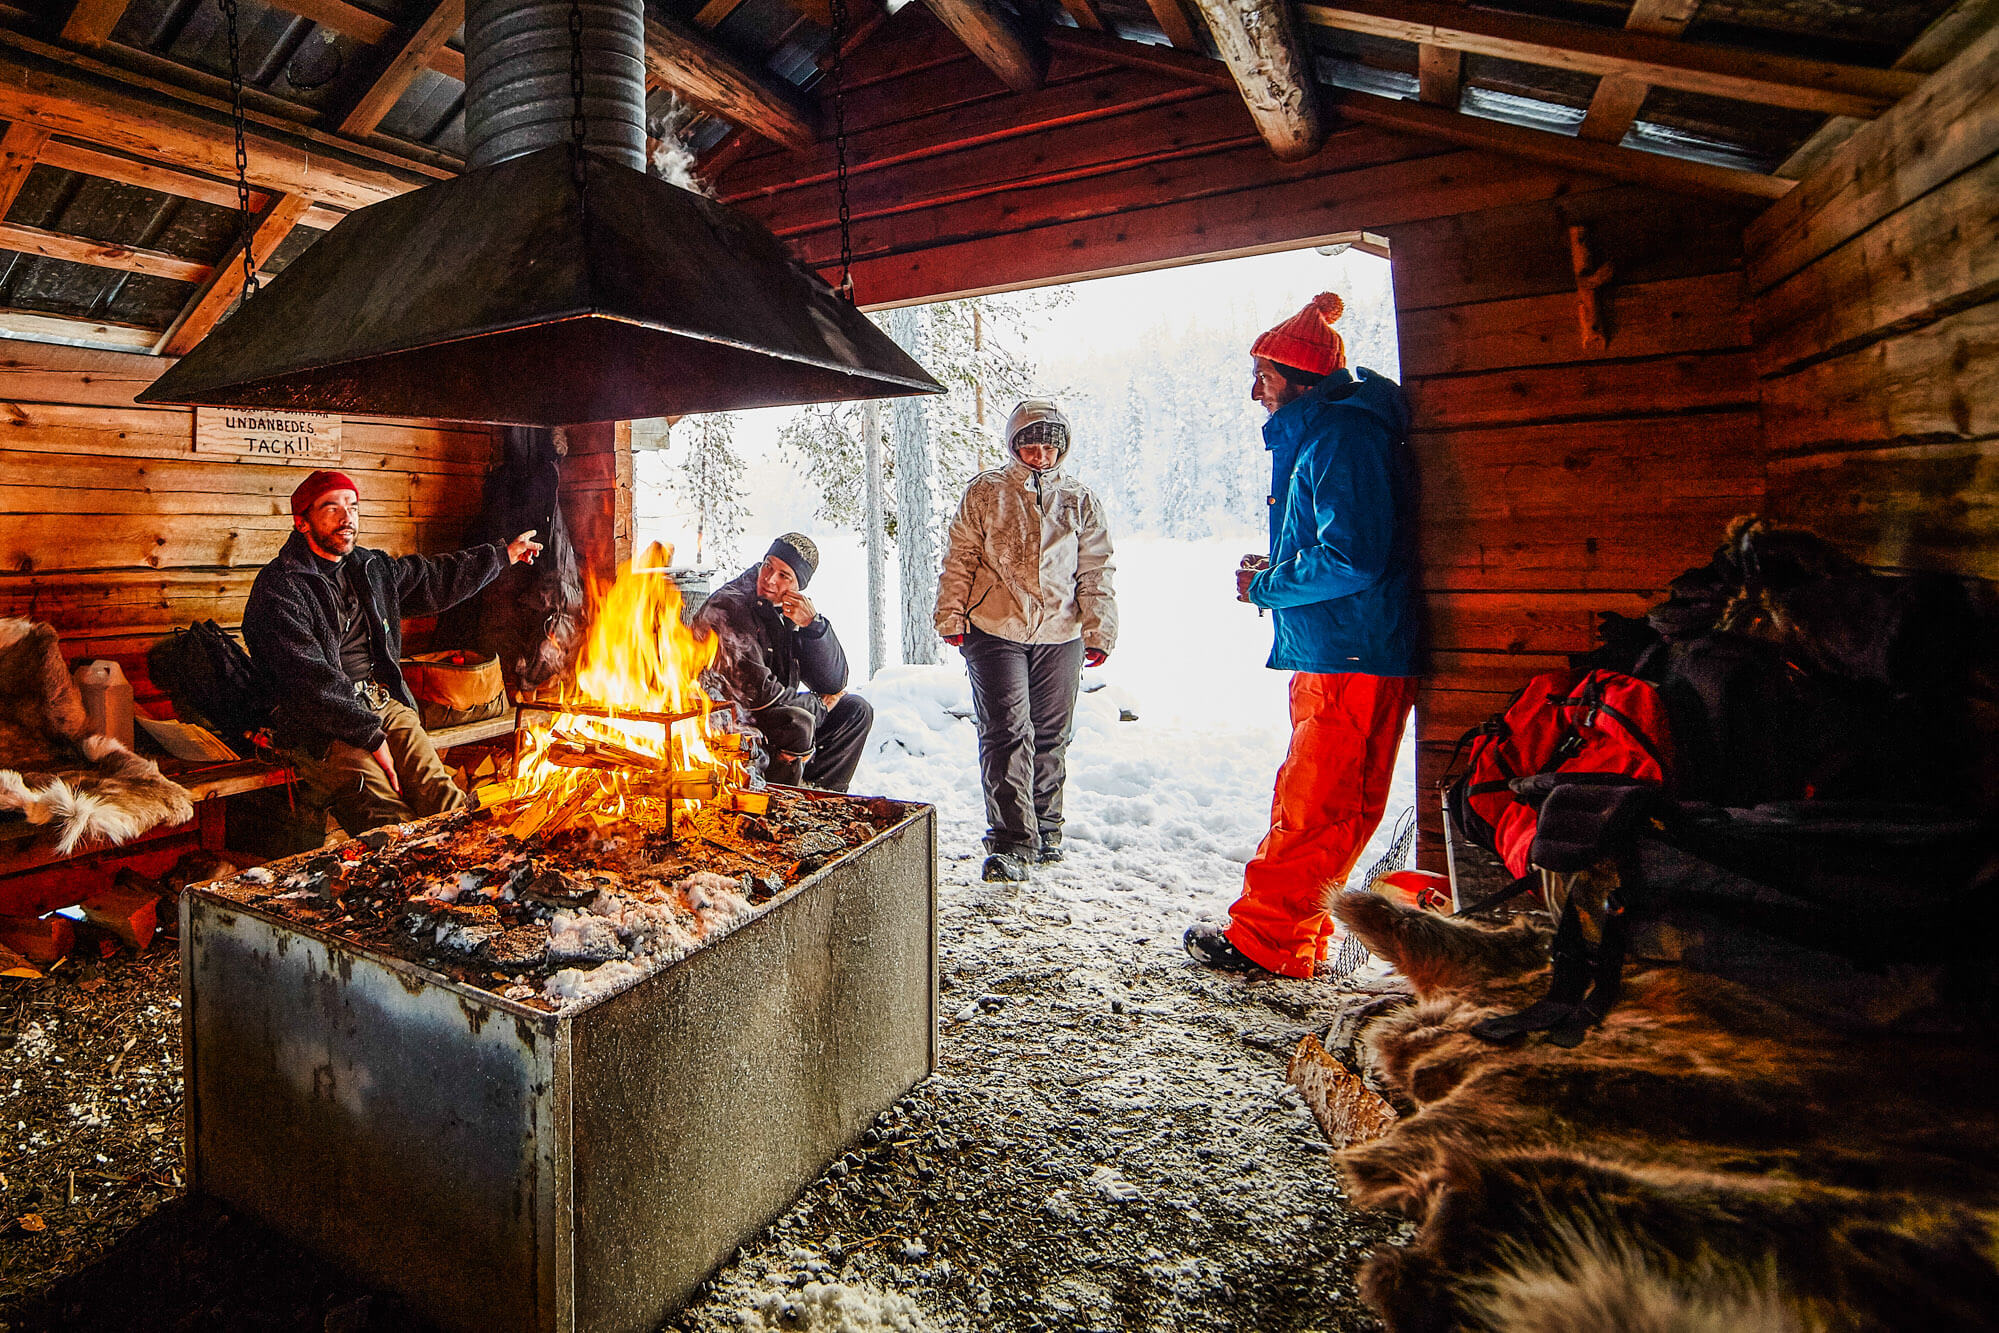 Lunch break around a wood fire in a cabin in Swedish Lapland